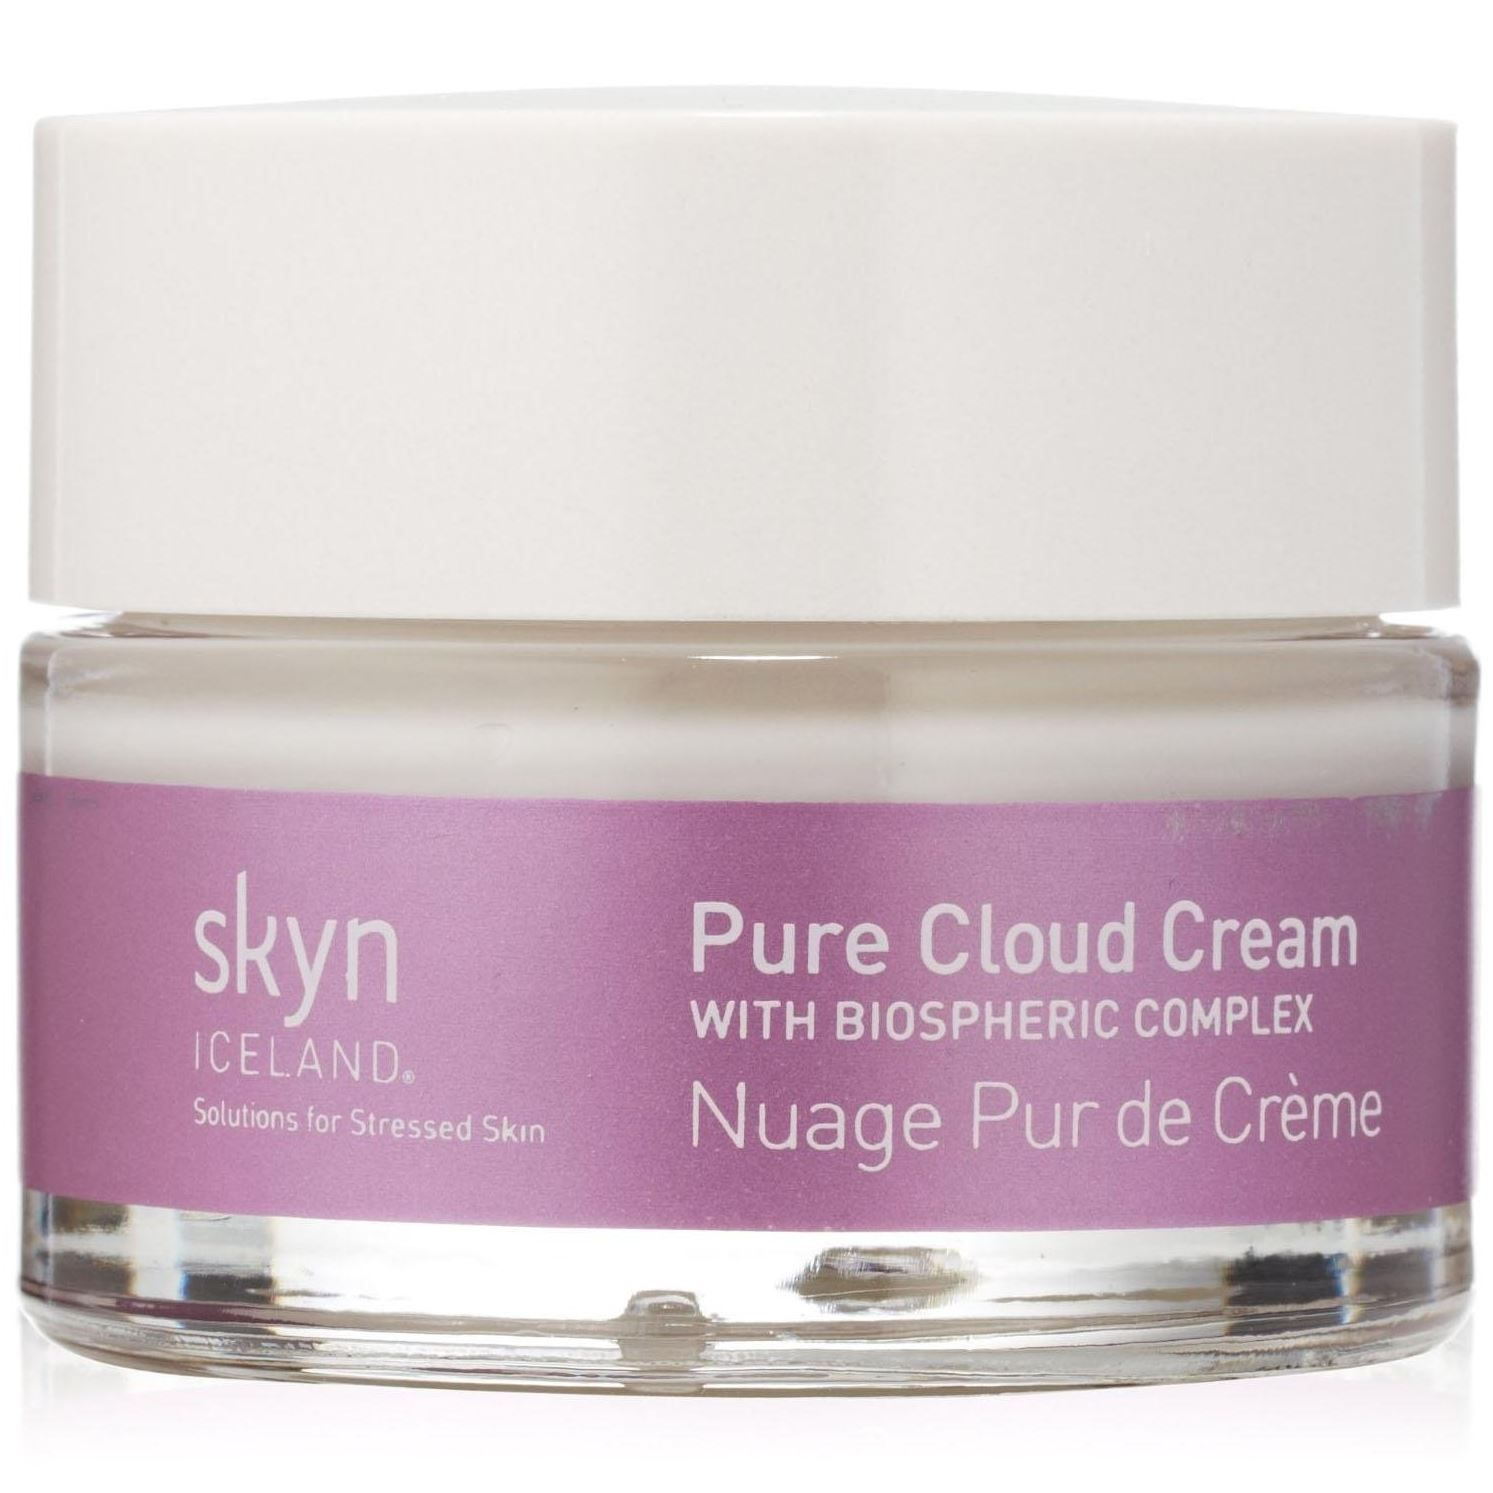 Pure Cloud Cream